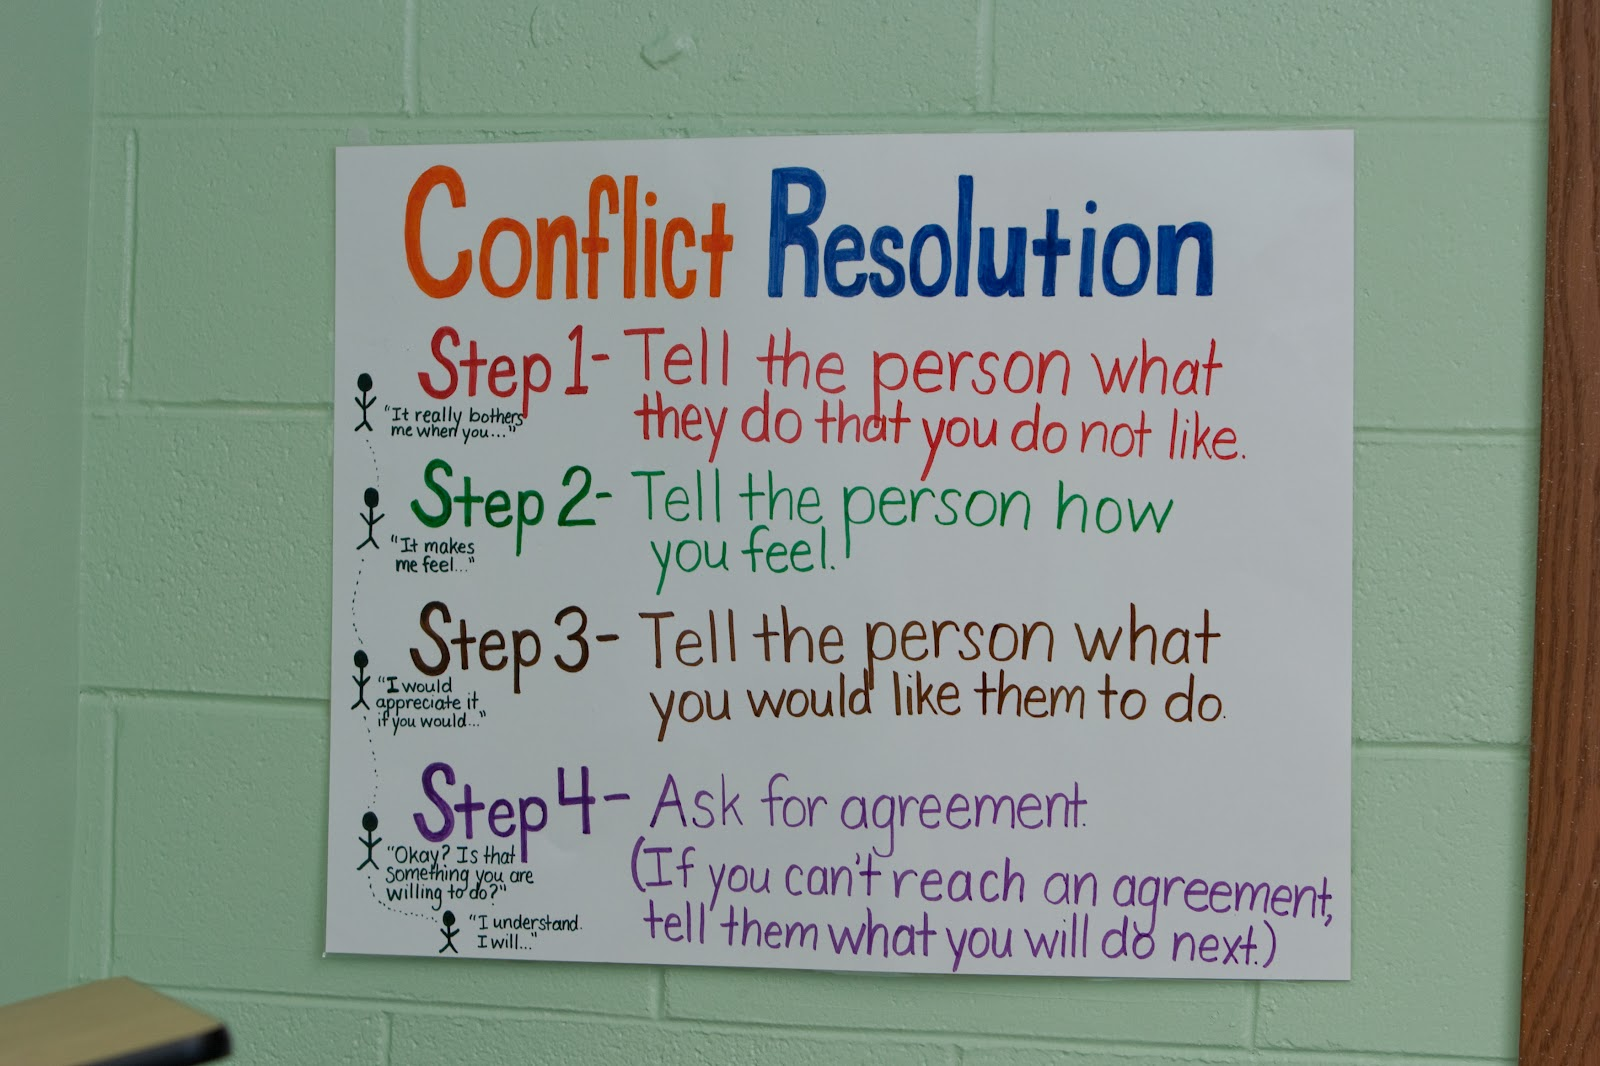 conflict resolution in a childcare setting The teacher's role in peaceful conflict resolution is to anticipate that conflict will occur within groups of children respond to children as conflict occurs naturally in the classroom support all children in conflict with the intent to promote positive growth teachers often find their role in peaceful conflict resolution a challenge.